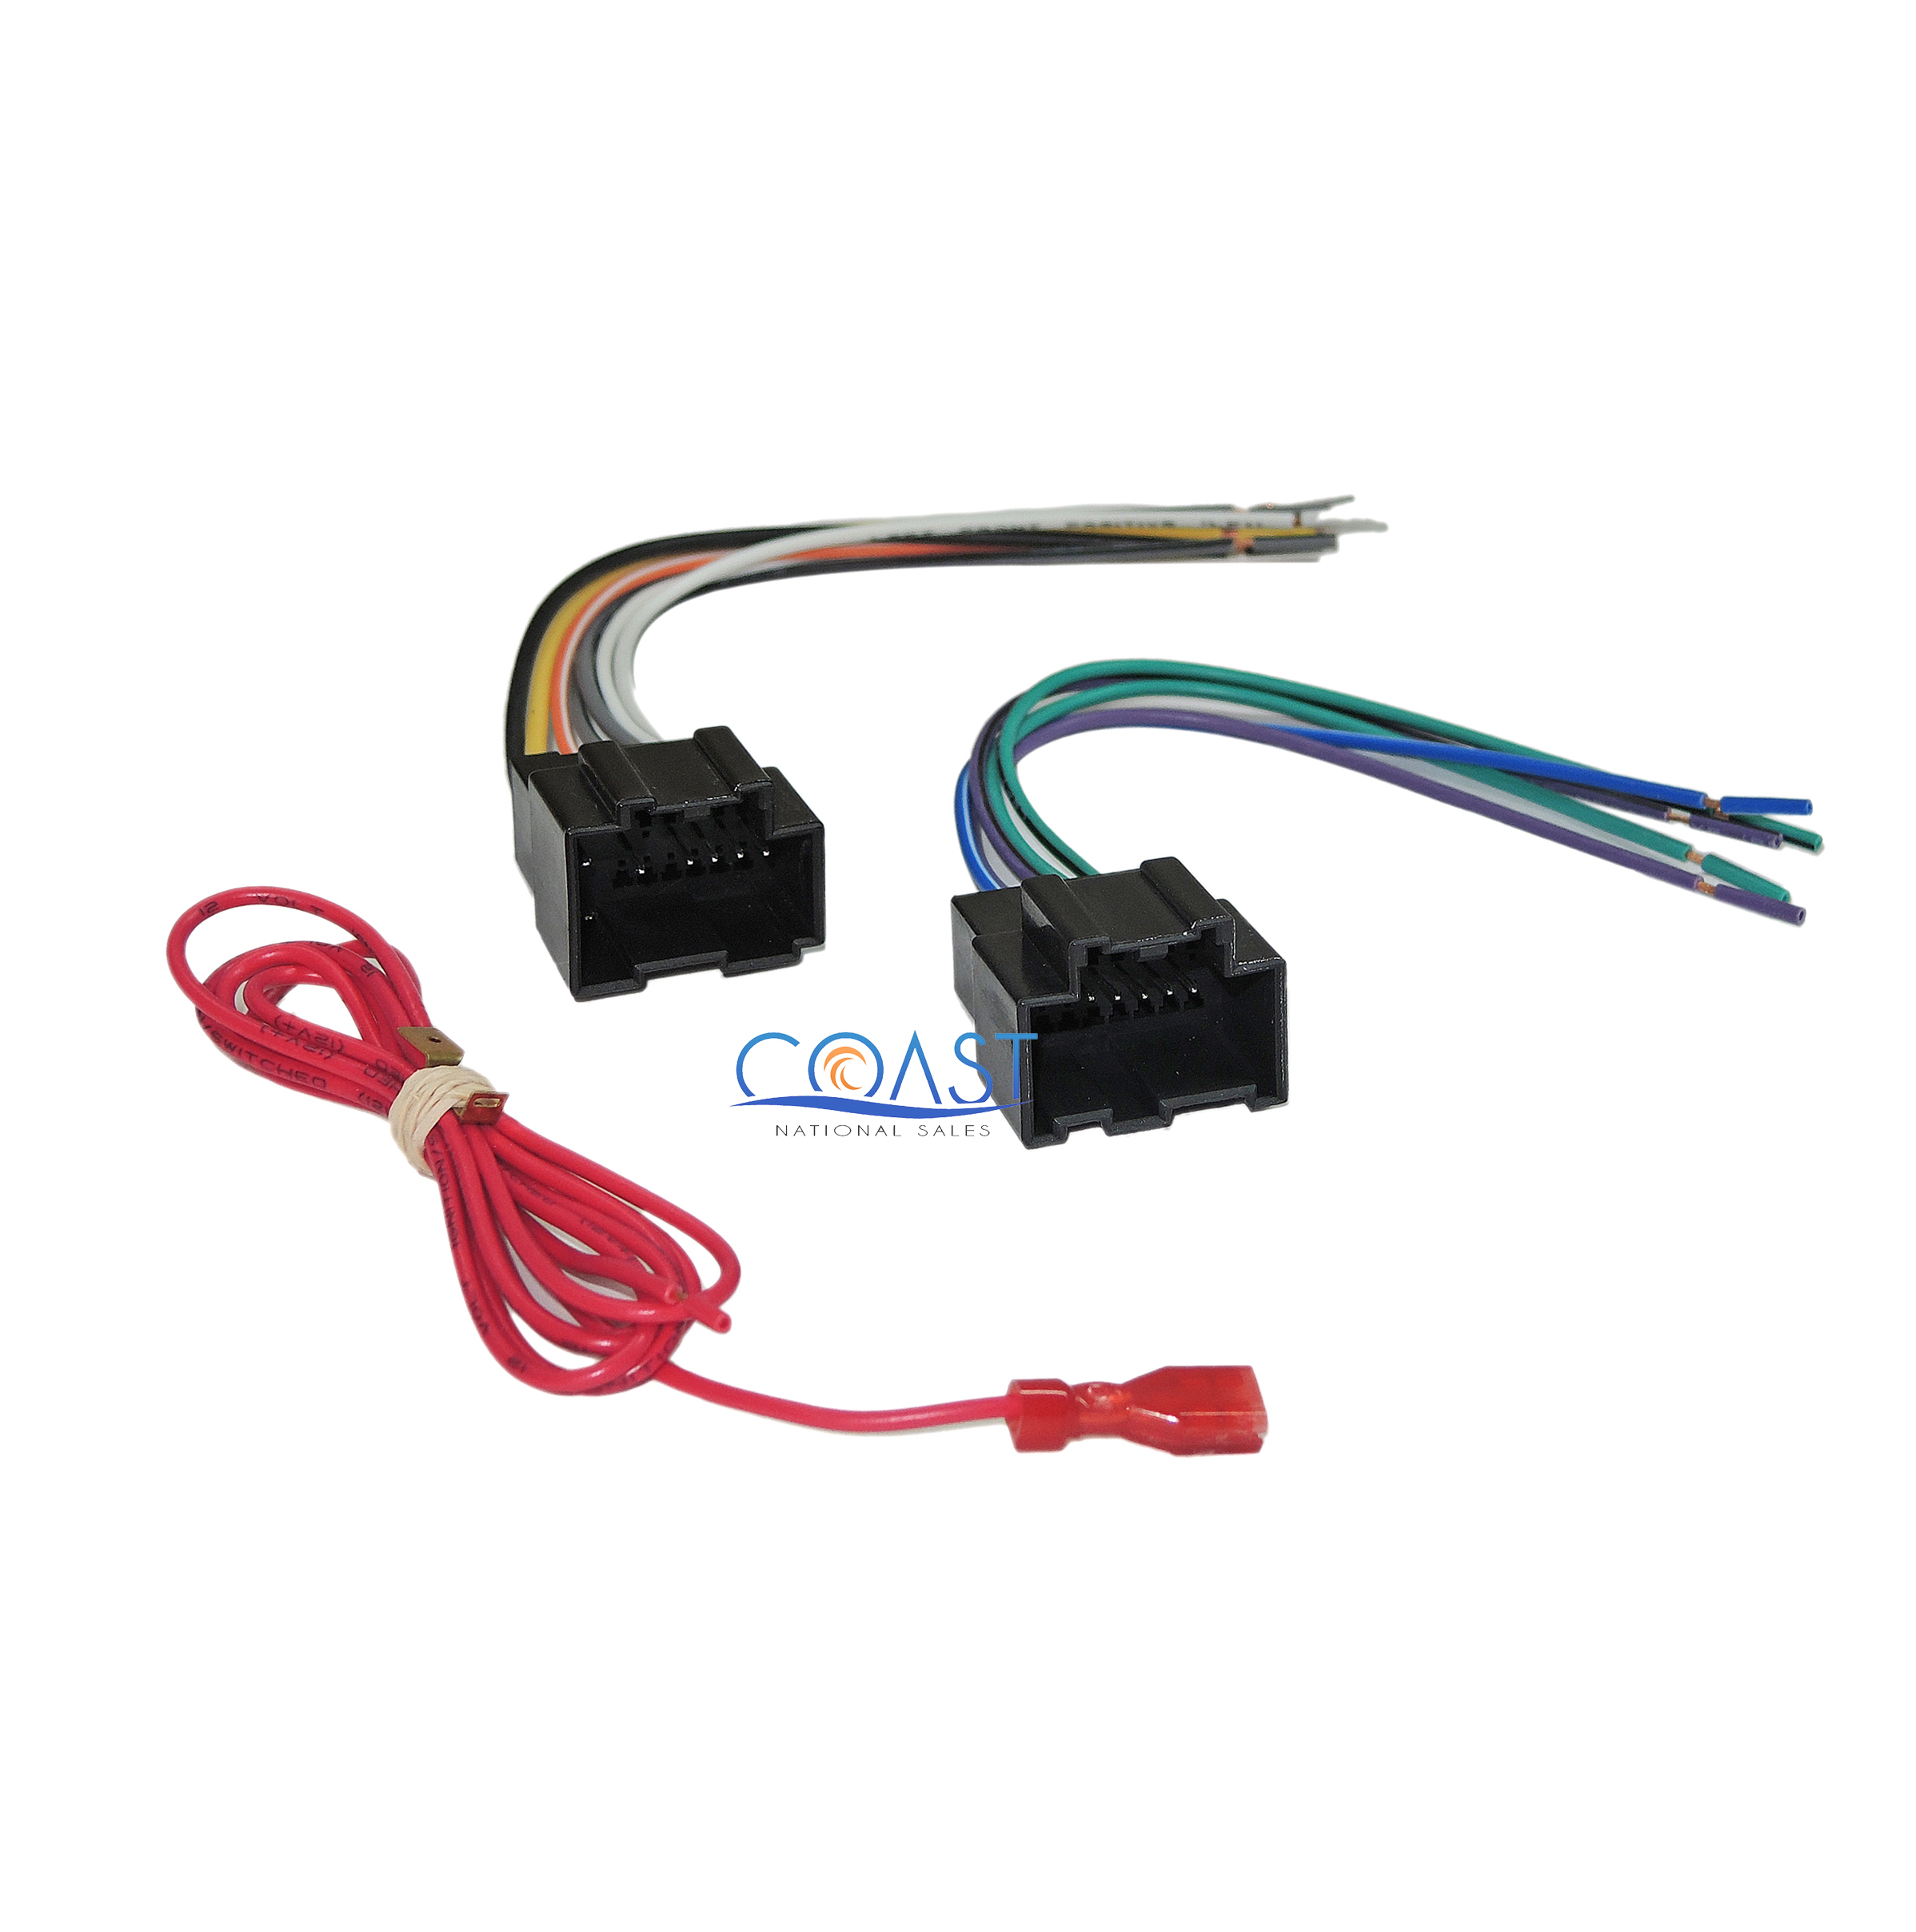 Metra 70 2104 Radio Wiring Harness For 06 Up Gm : Aftermarket radio harness for  gm vehicles w